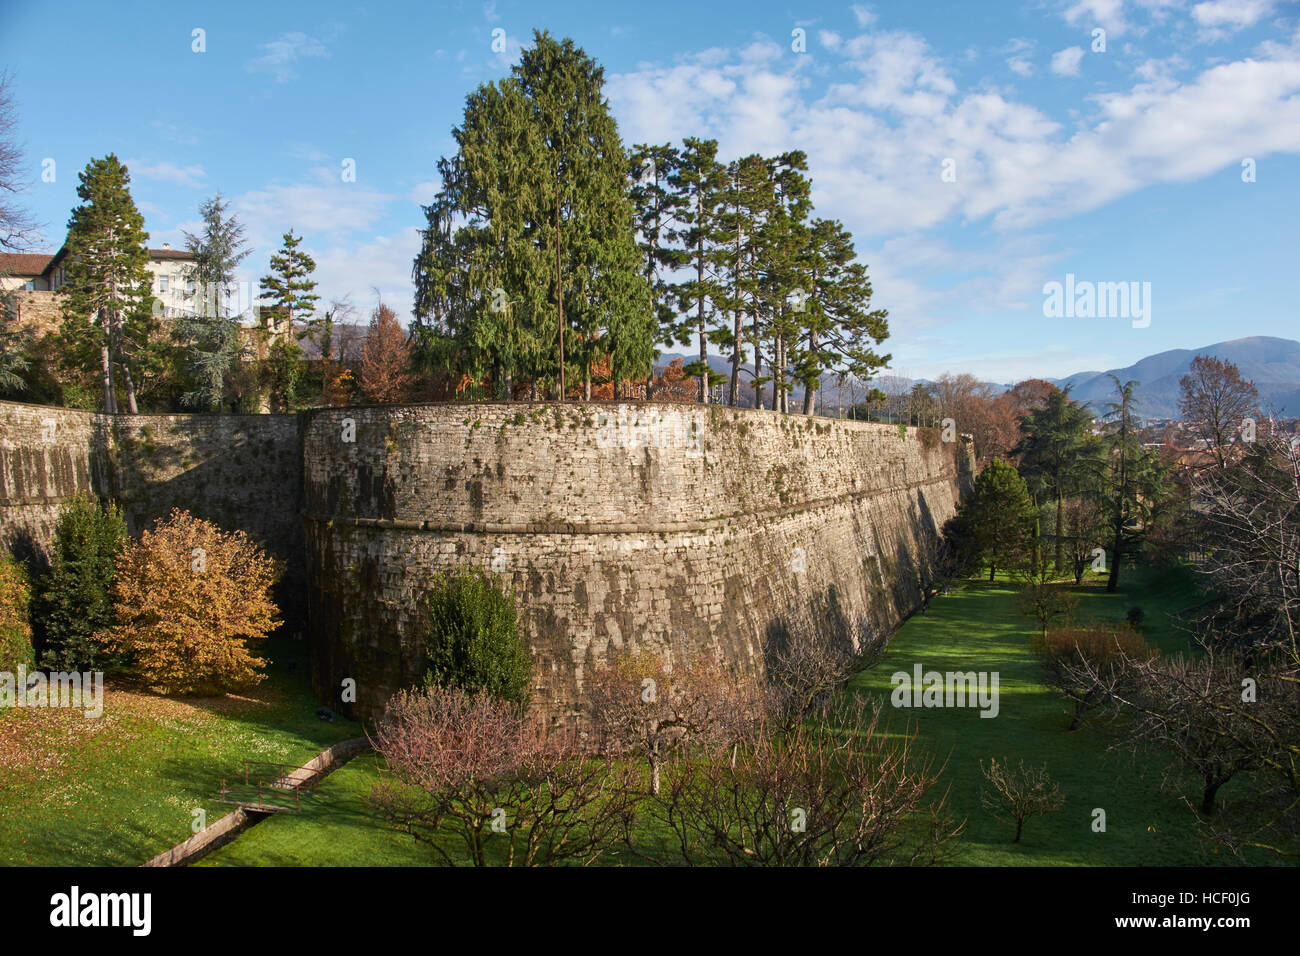 Bergamo, Italy: the Venetian Walls.  The Venetians built these fortified walls around the old Upper City (Citta - Stock Image